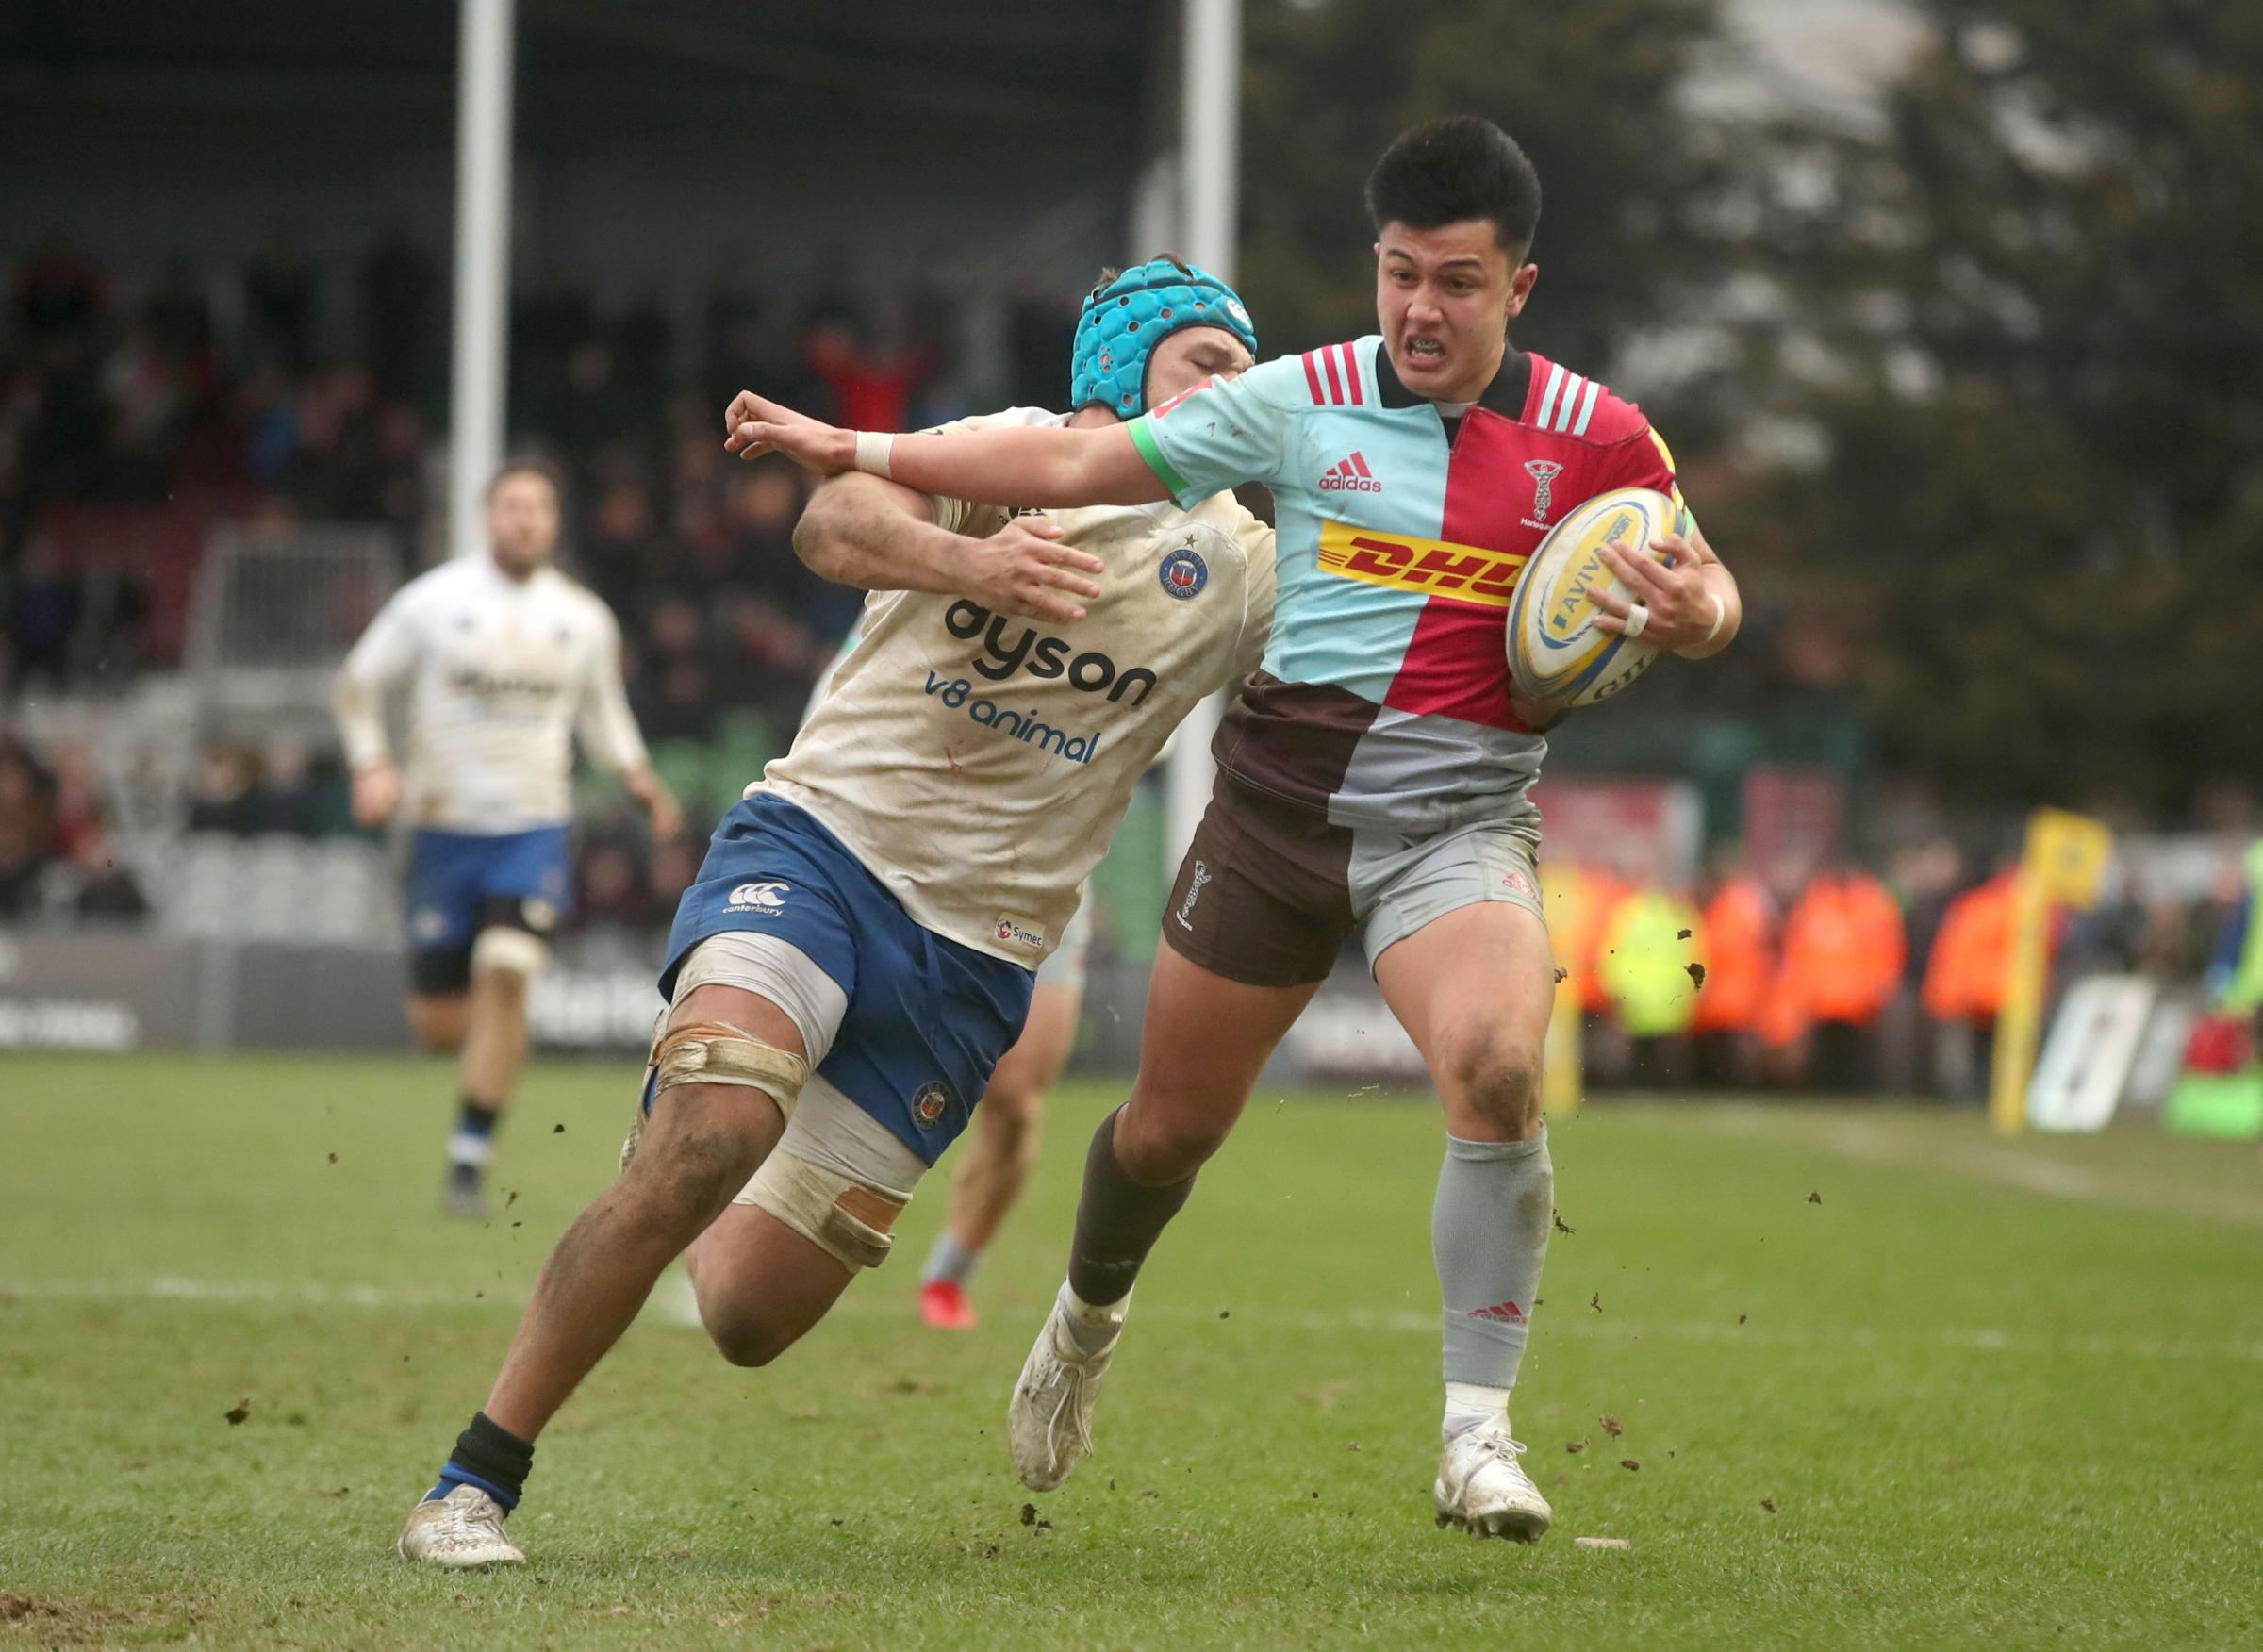 Harlequins' Marcus Smith is tackled by Bath's Zach Mercer